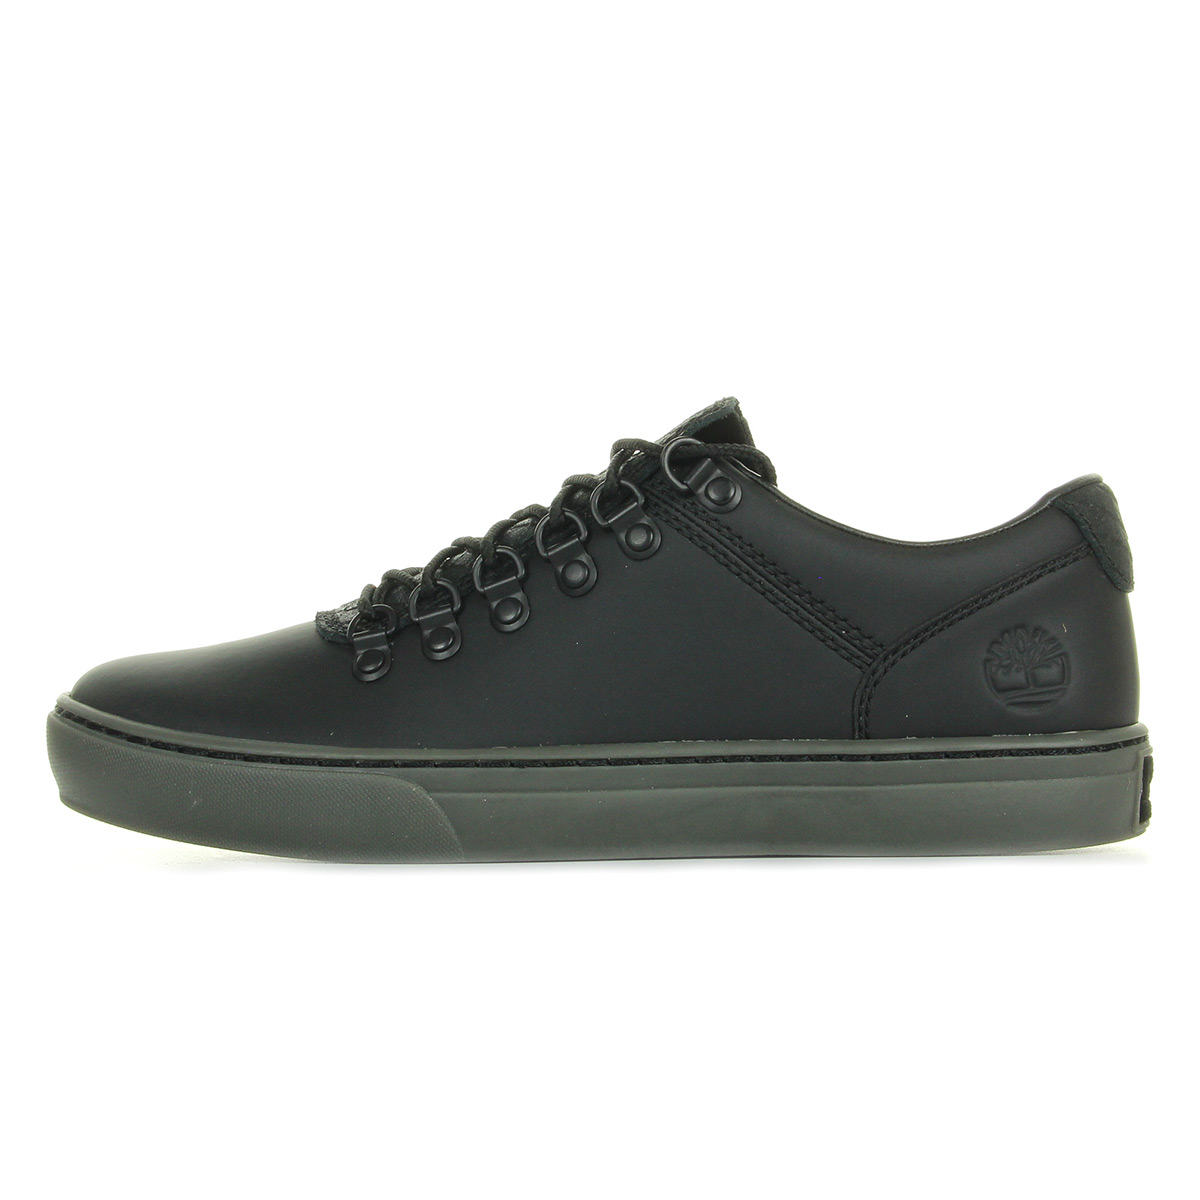 Timberland Adv 2.0 Rubberized CA1HFS, Baskets mode homme